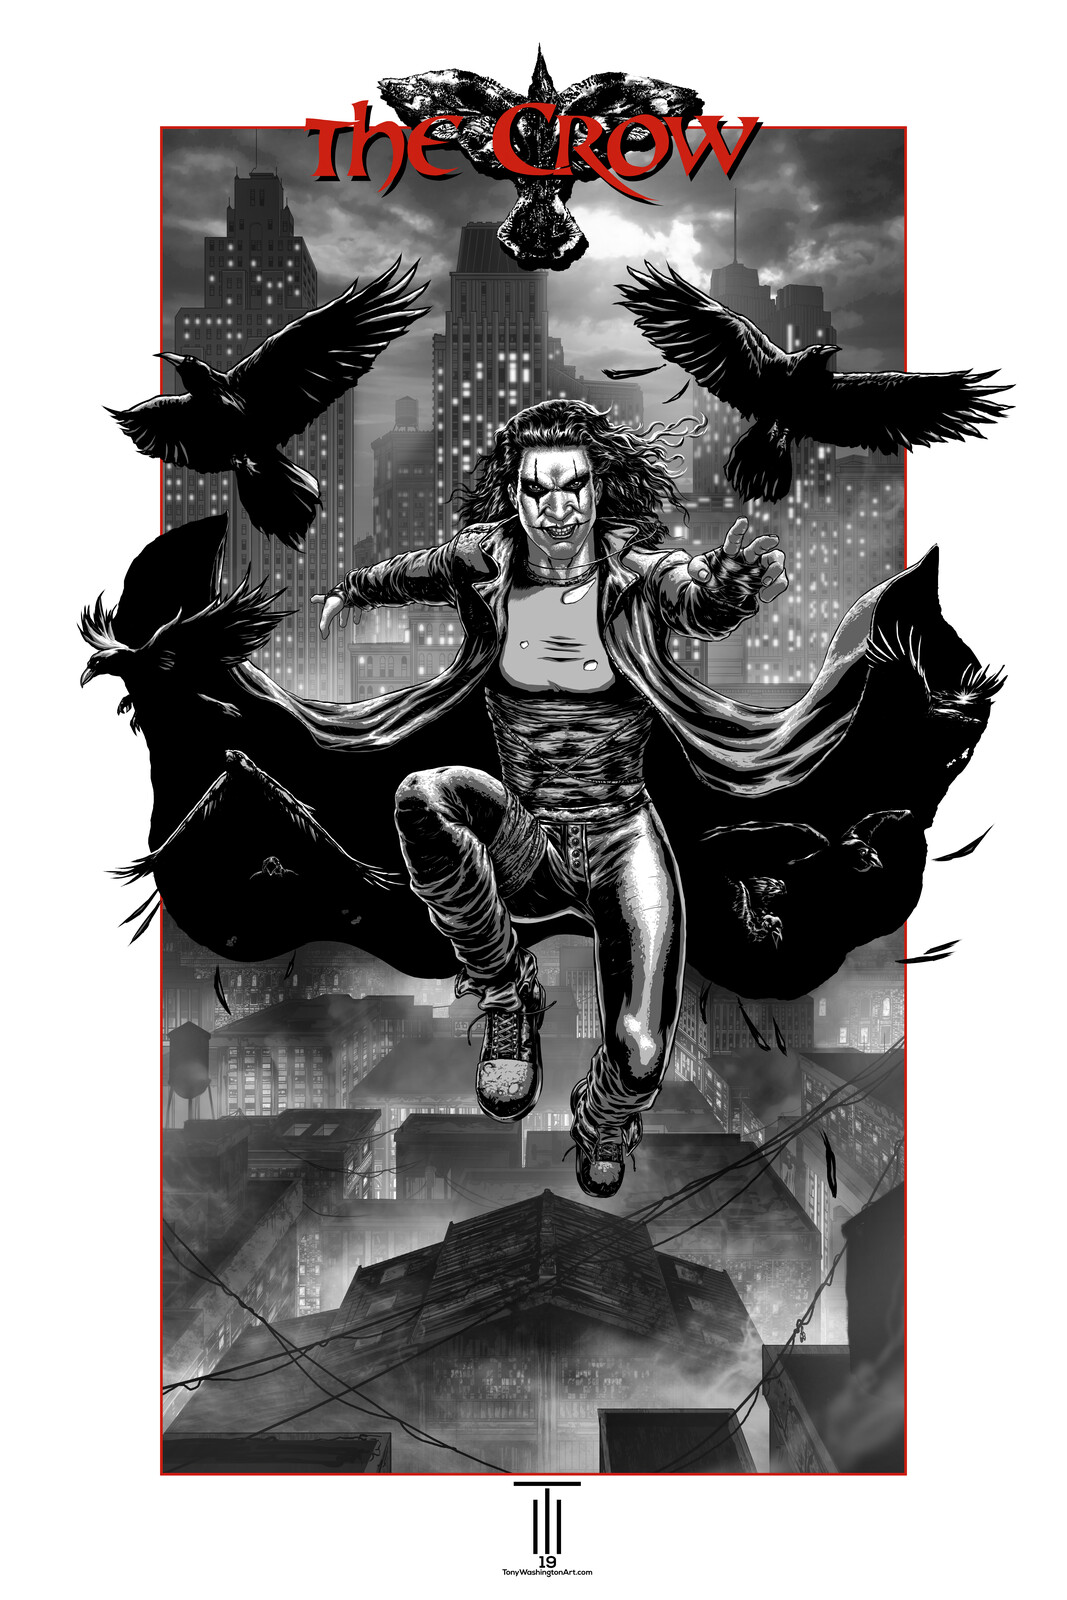 SDCC 2019 The Crow Poster